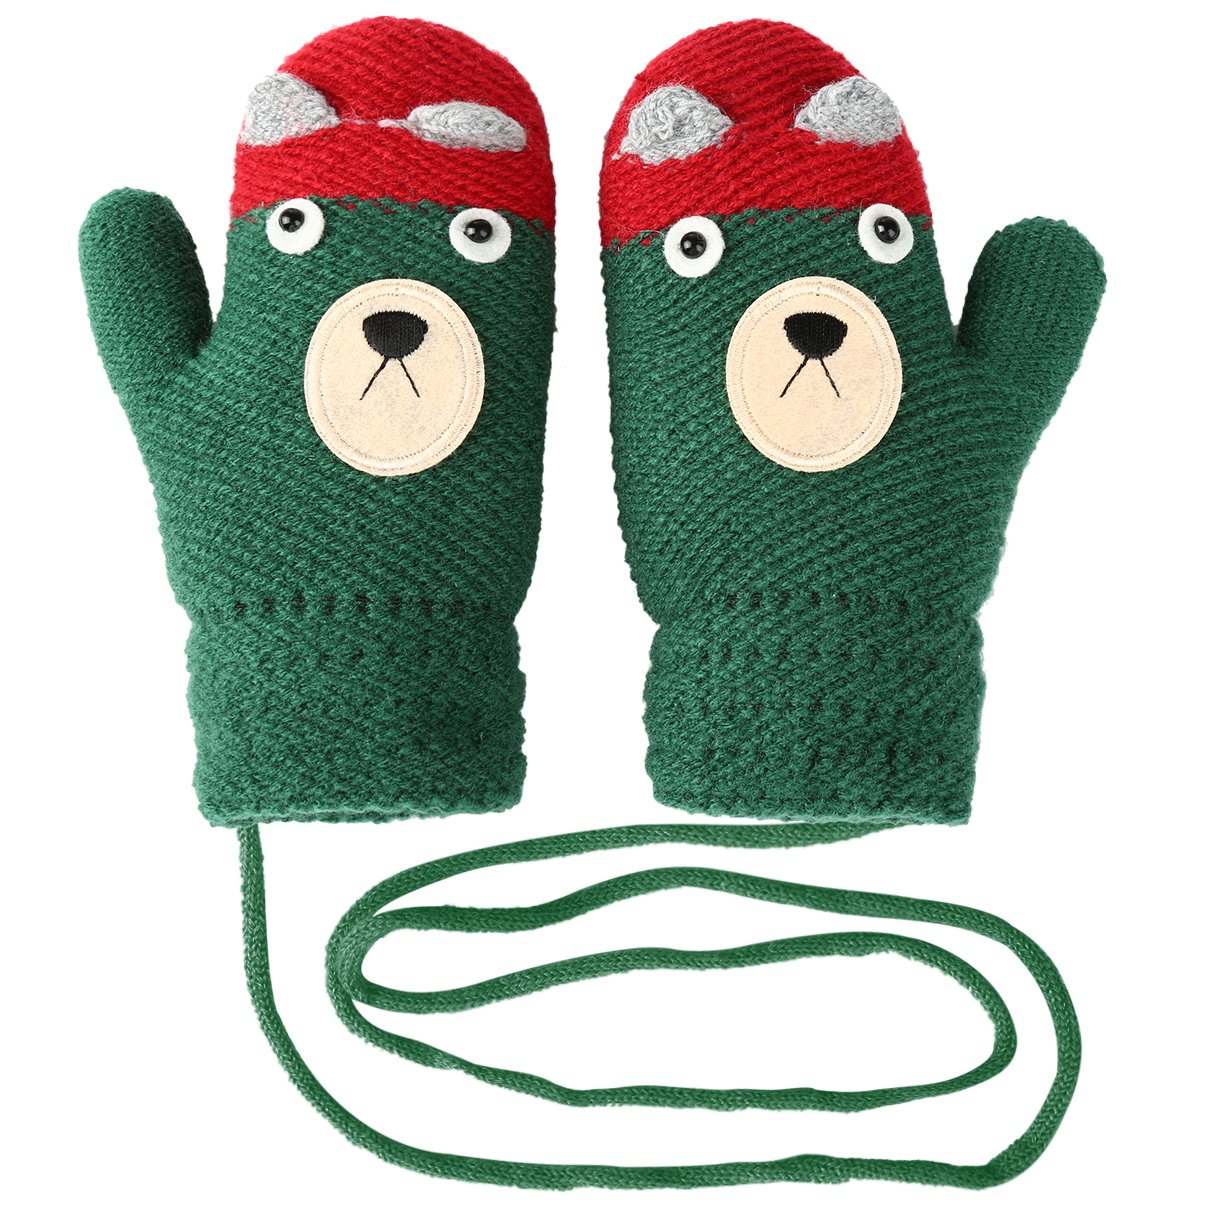 Vbiger Kids Winter Gloves Cartoon Thickened Knitted Mittens with Anti-lost String, Aged 4-8